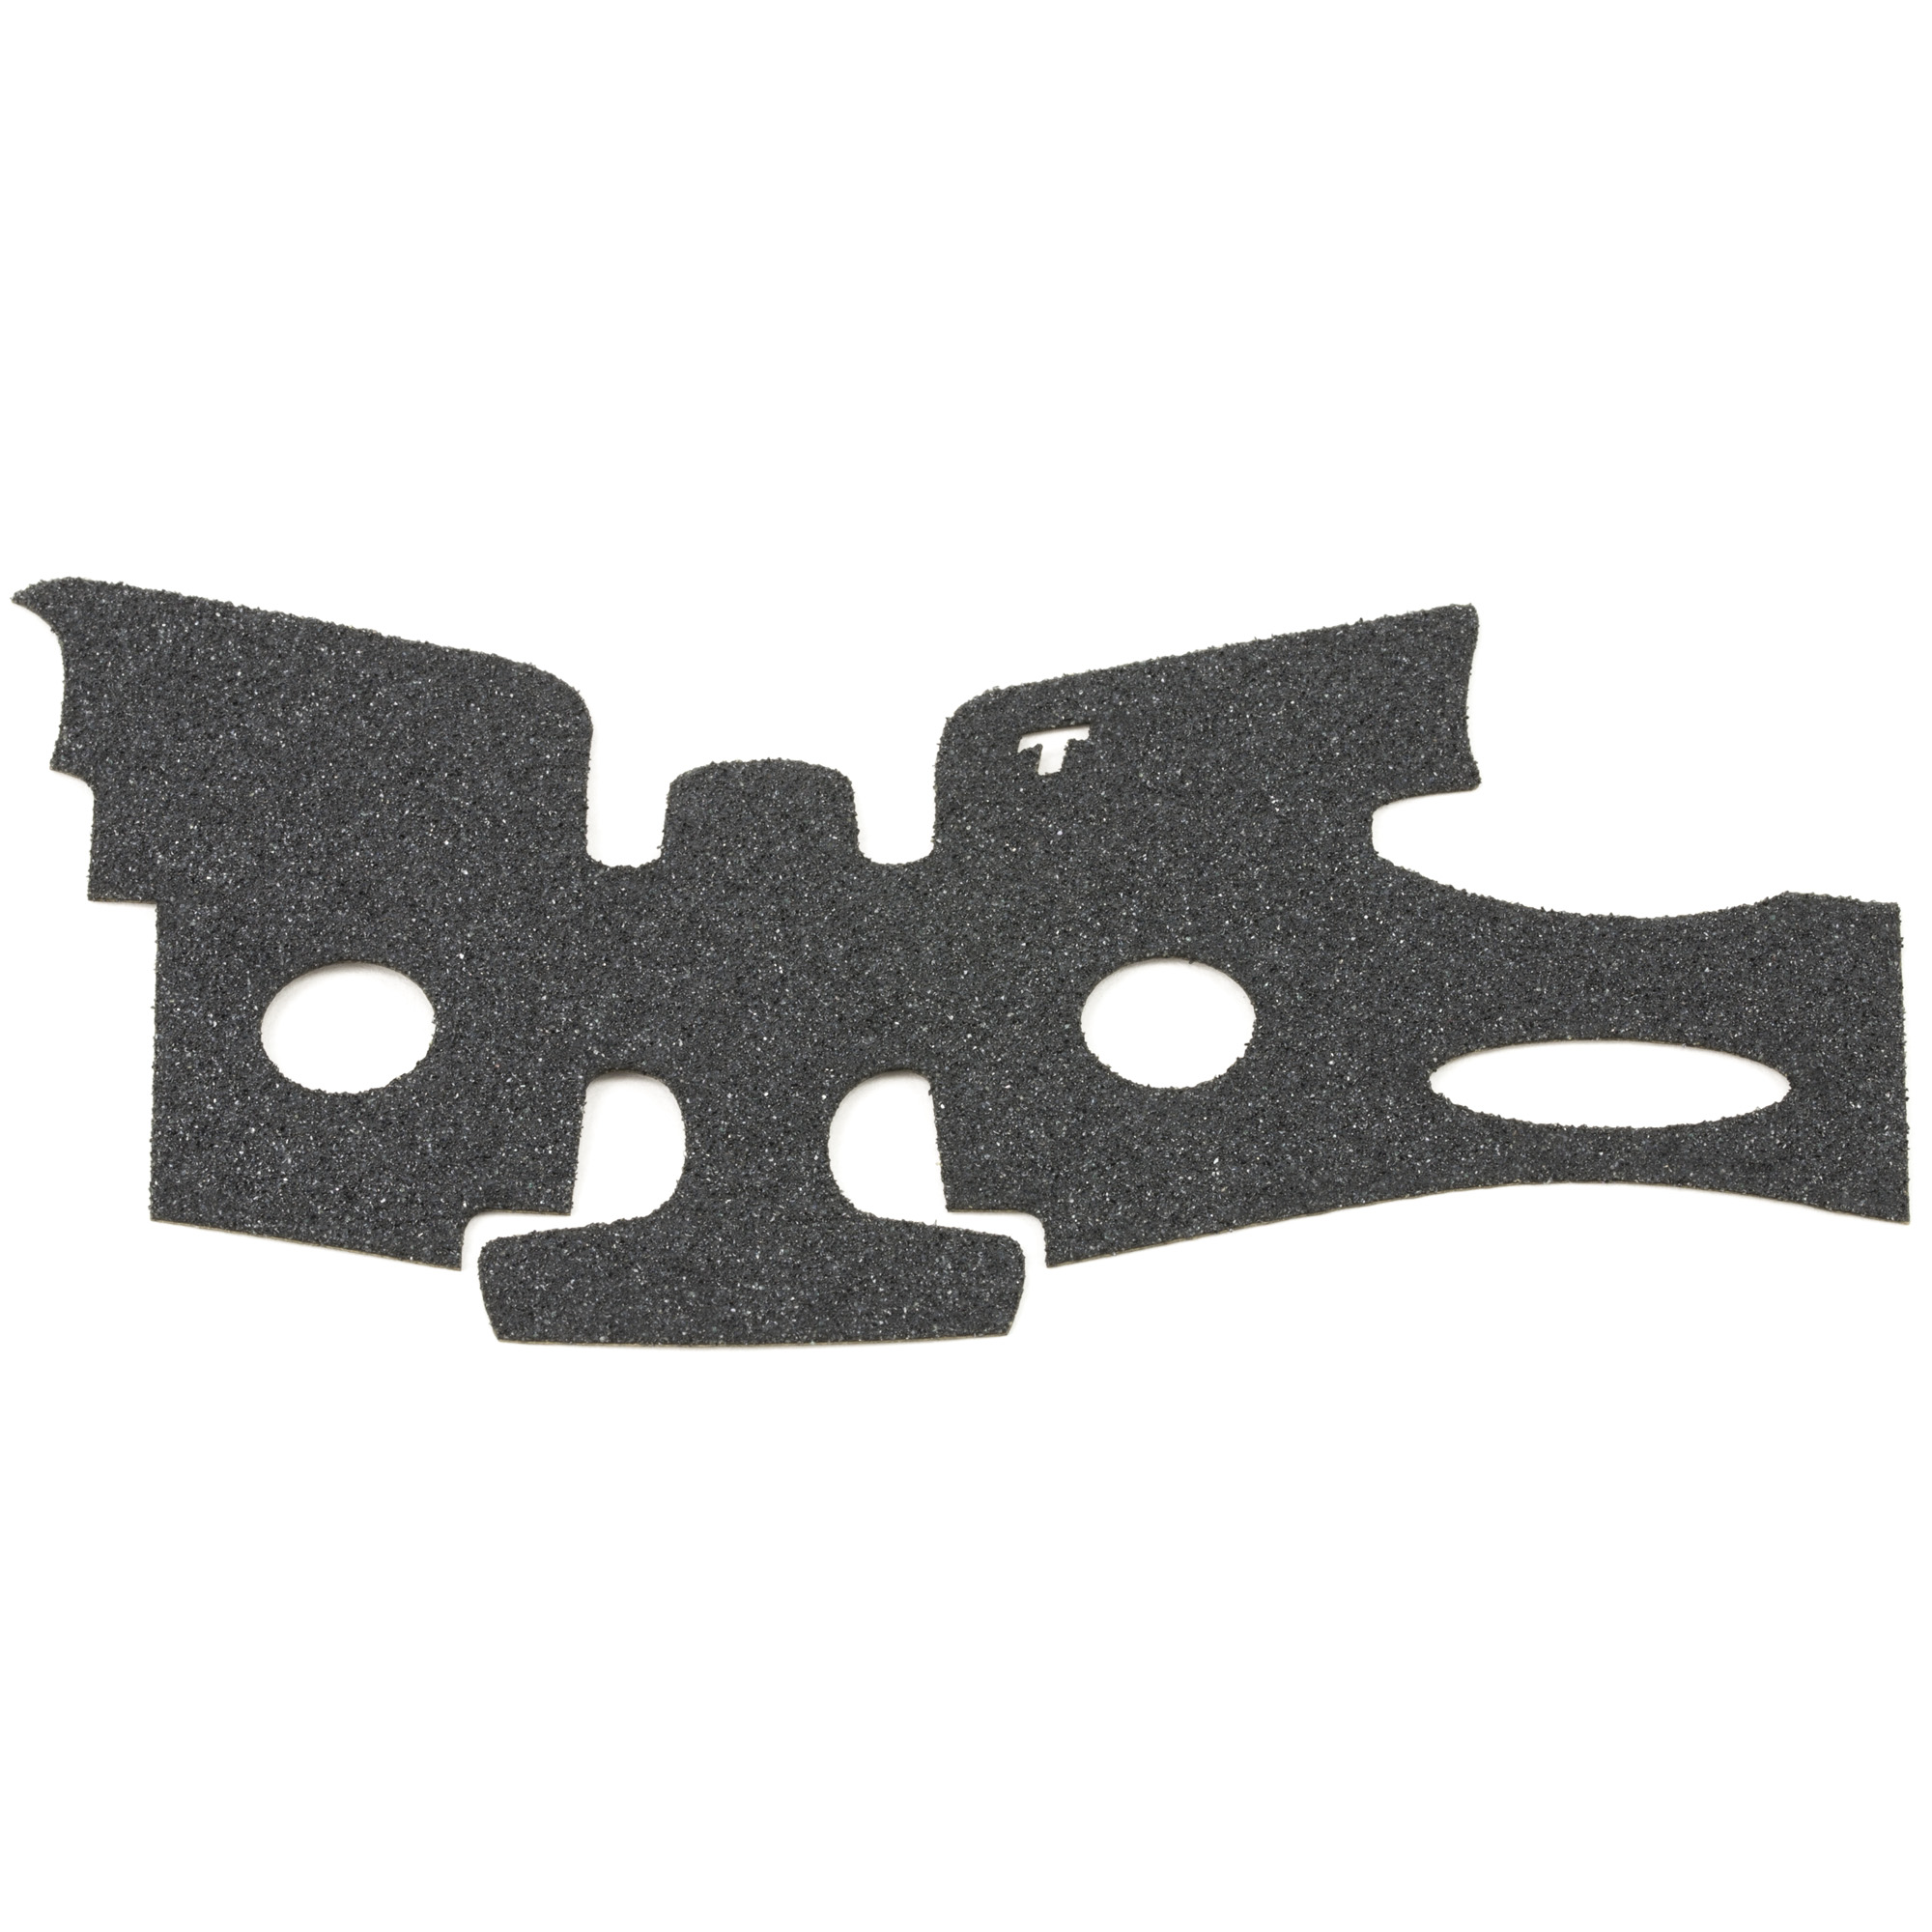 """TALON Grips for Smith & Wesson Bodyguard 380 model. This grip also fits the newer M&P Bodyguard 380. This rear wrap grip is in the granulate texture and offers full side panel coverage including the thumb rest area"""" full coverage under the trigger guard"""" and high coverage on the backstrap. This grip has graphic cutouts for the S&W emblem on each side of the firearm."""